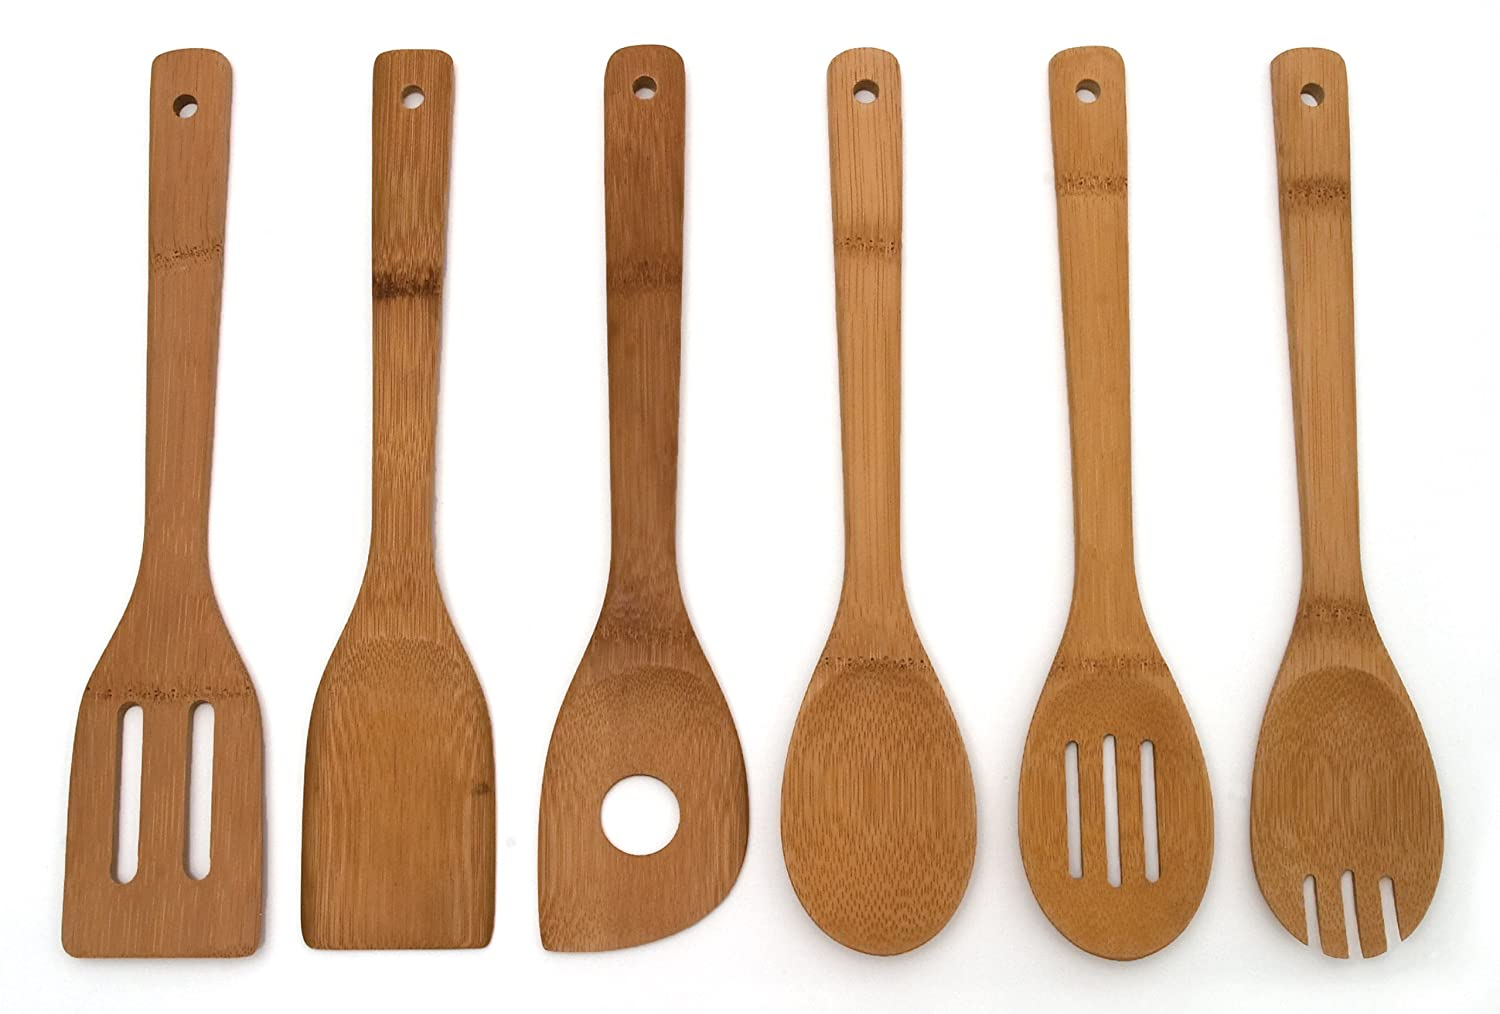 Kitchen equipment and their uses - Lipper International 826 Set Of 6 Bamboo Kitchen Tools In Mesh Bag